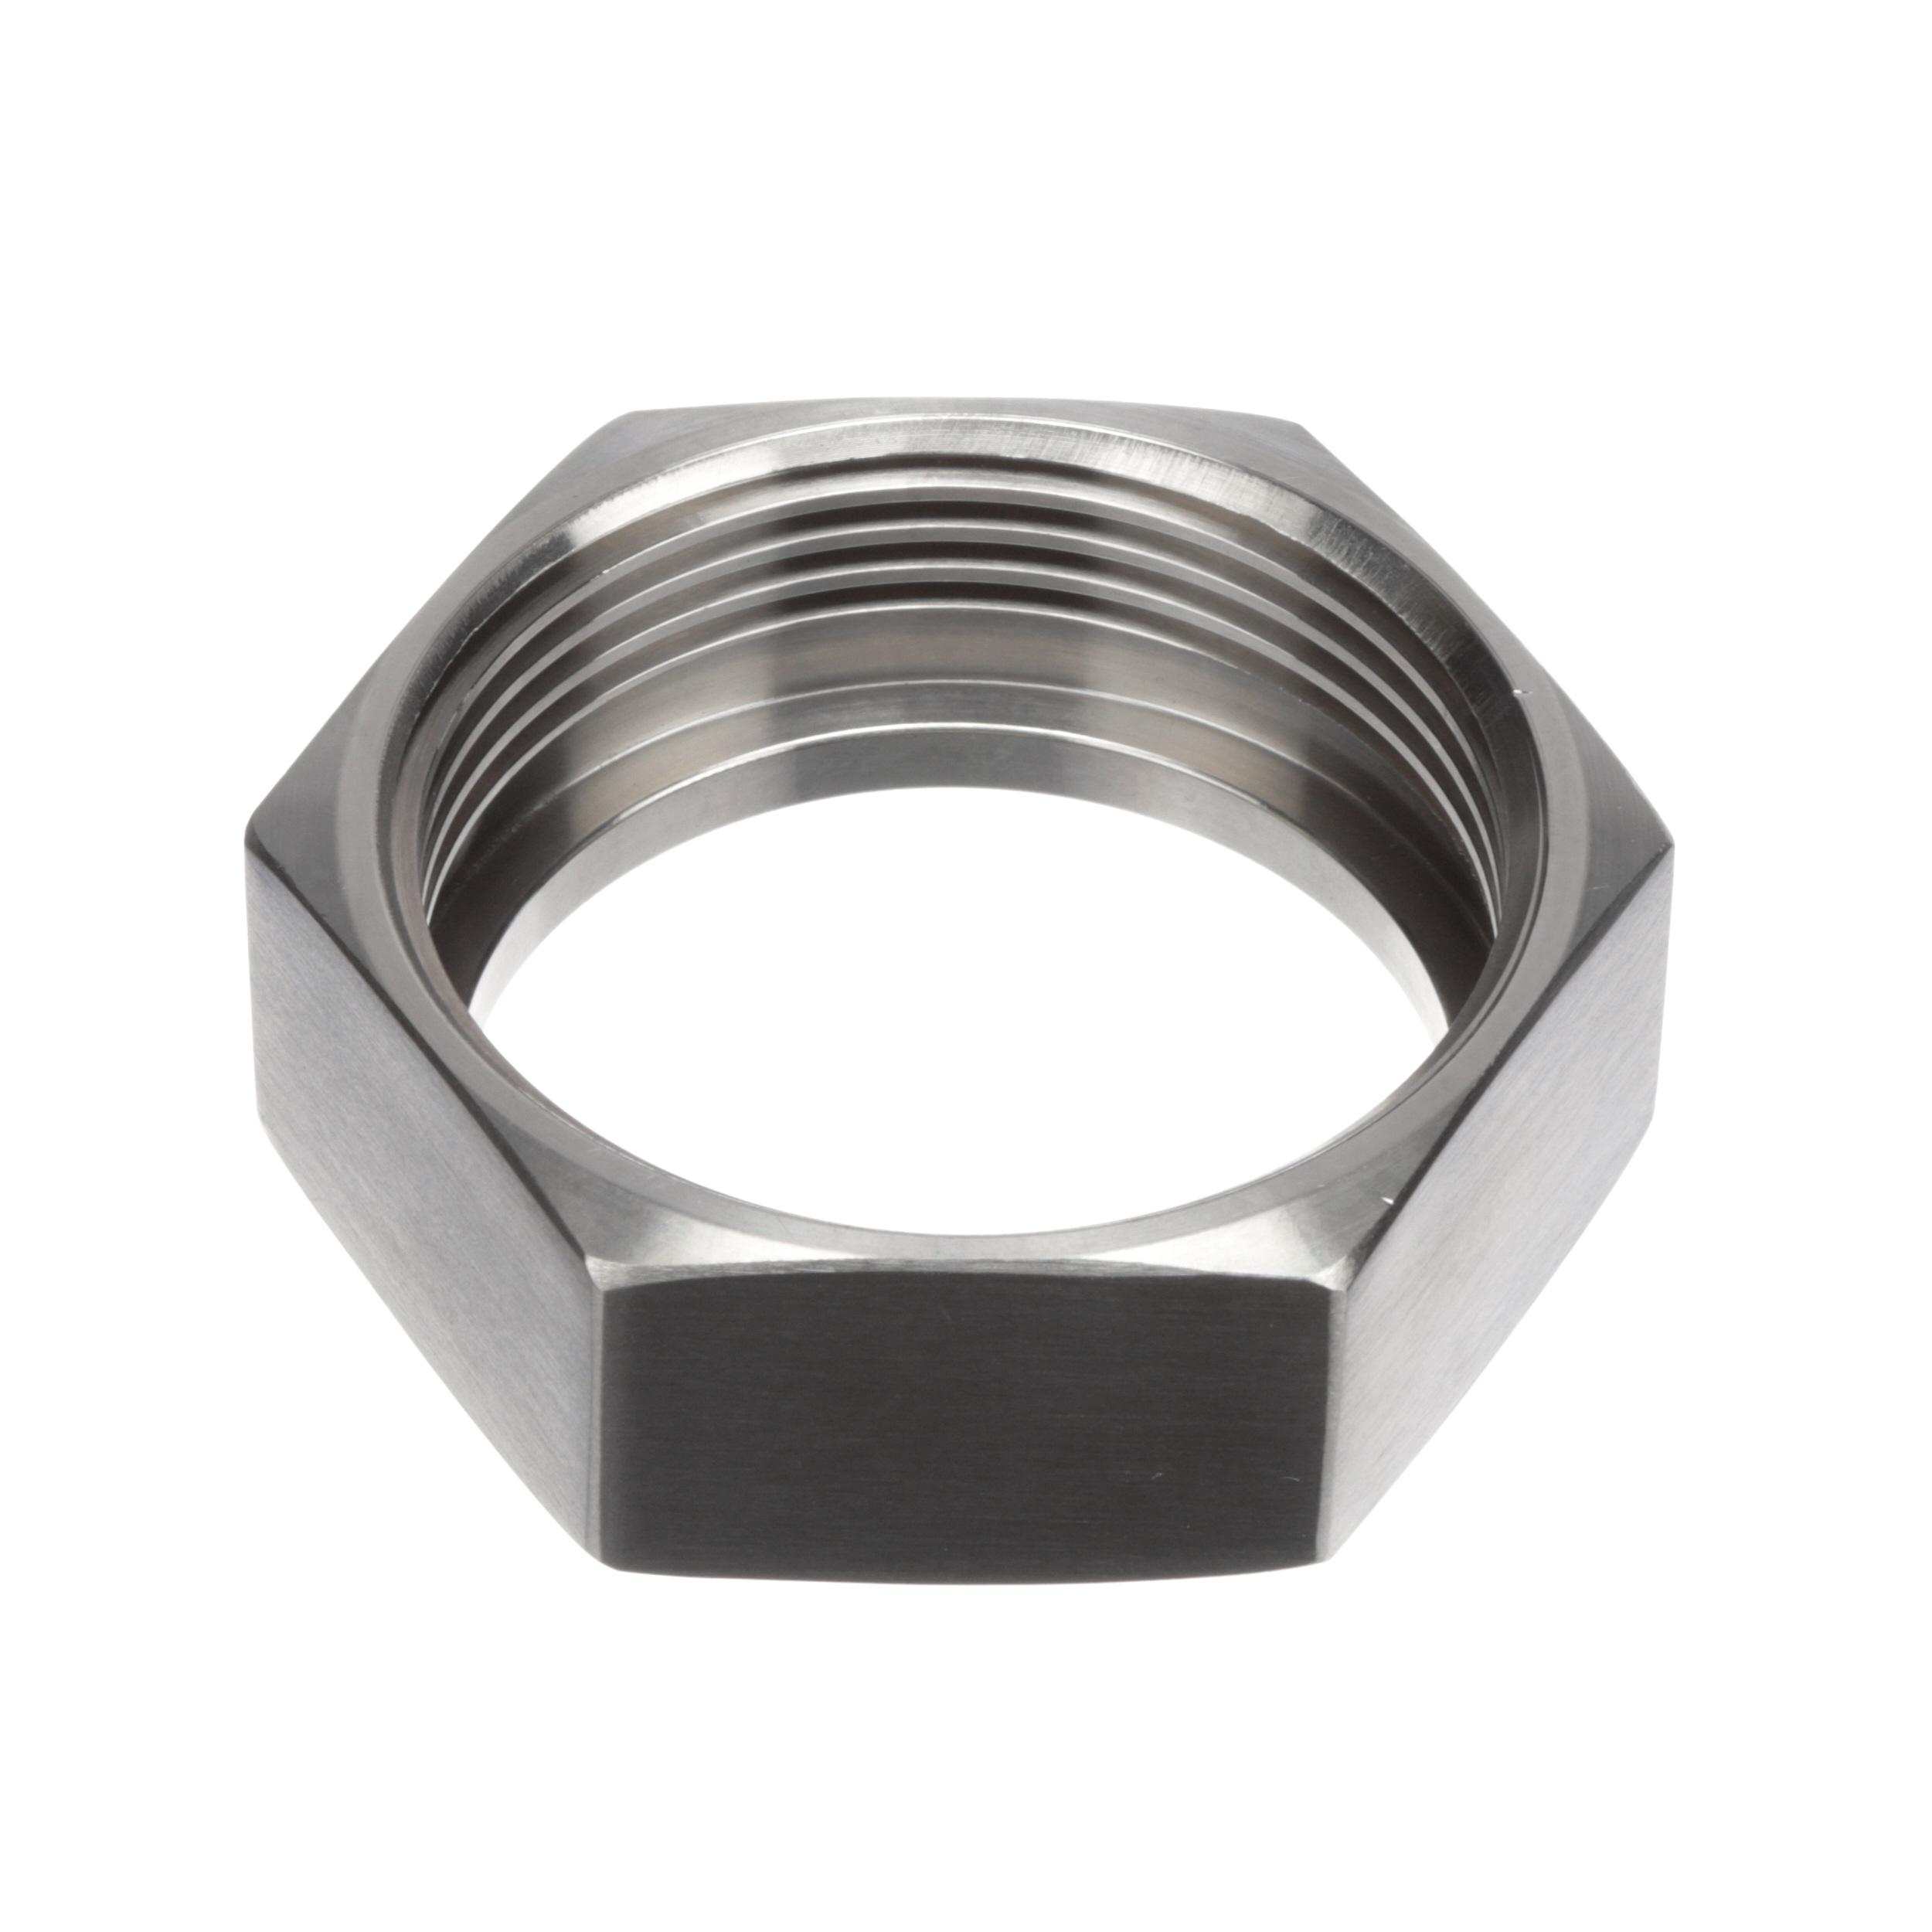 BLODGETT HEX NUT ASSEMBLY